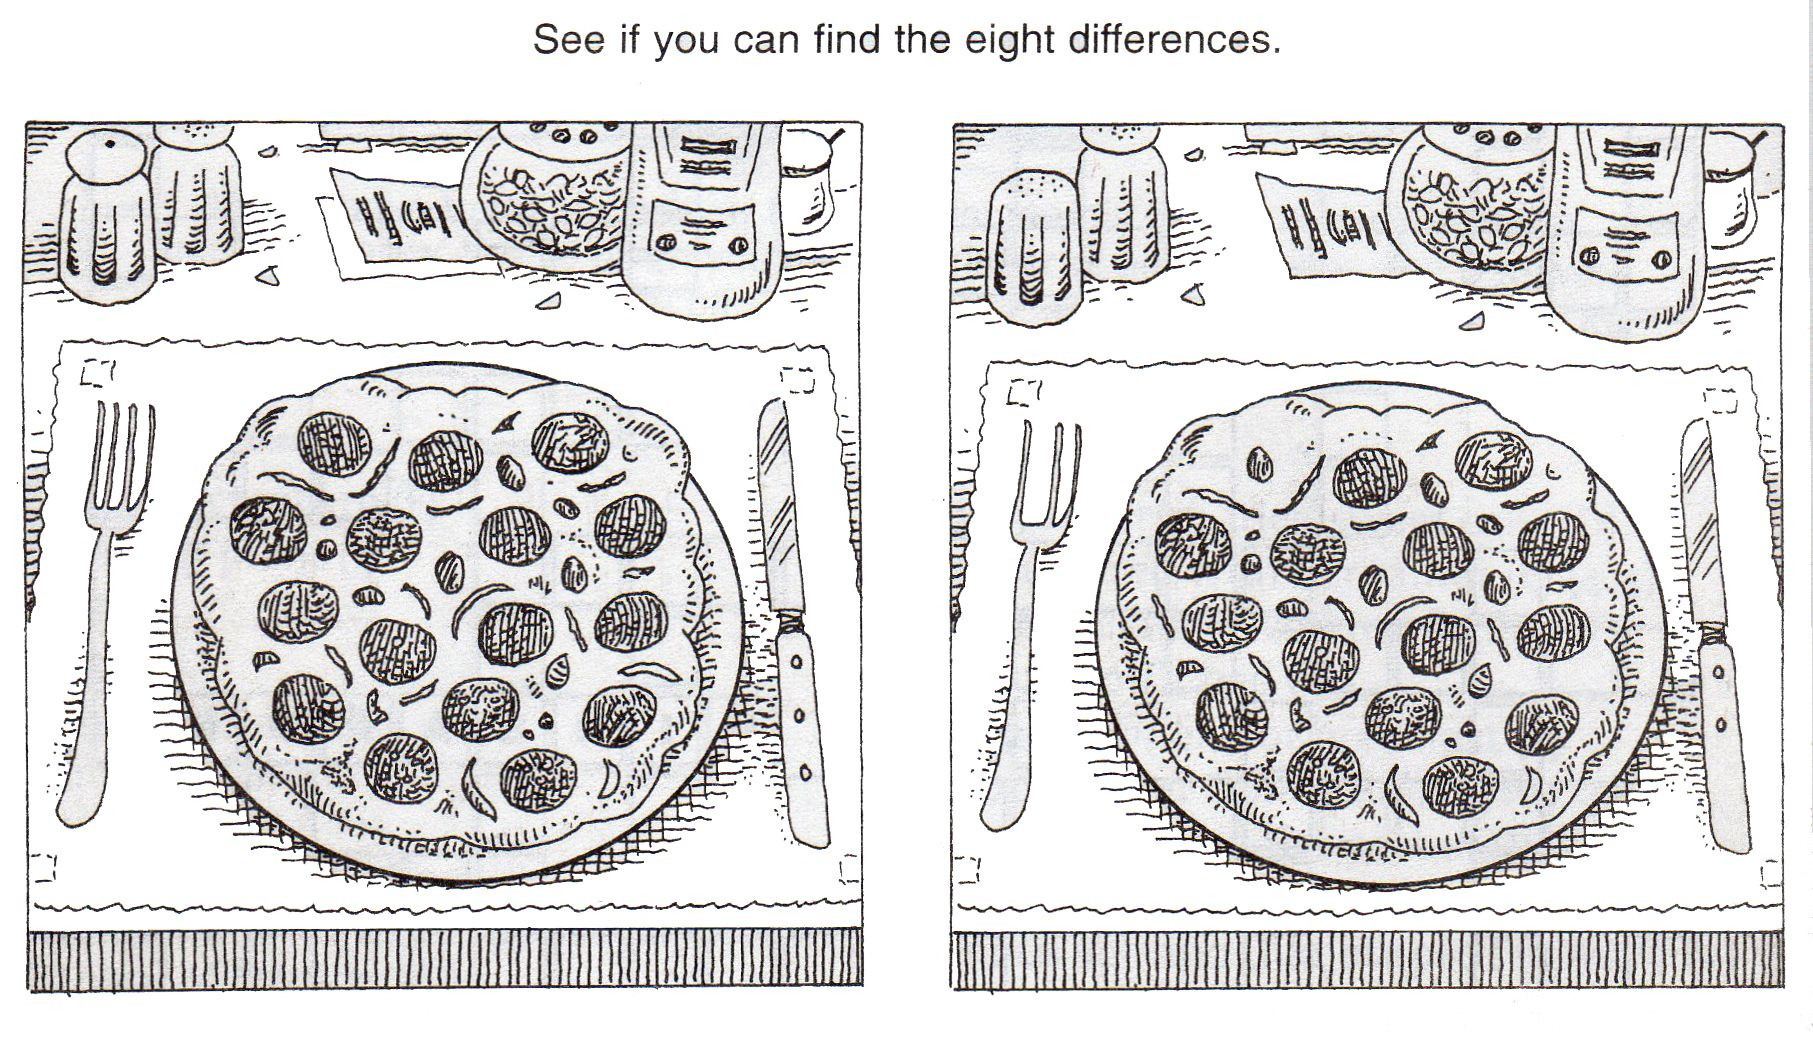 Free+Printable+Spot+The+Difference+Puzzles | Hg | Spot The - Printable Spot The Difference Puzzle